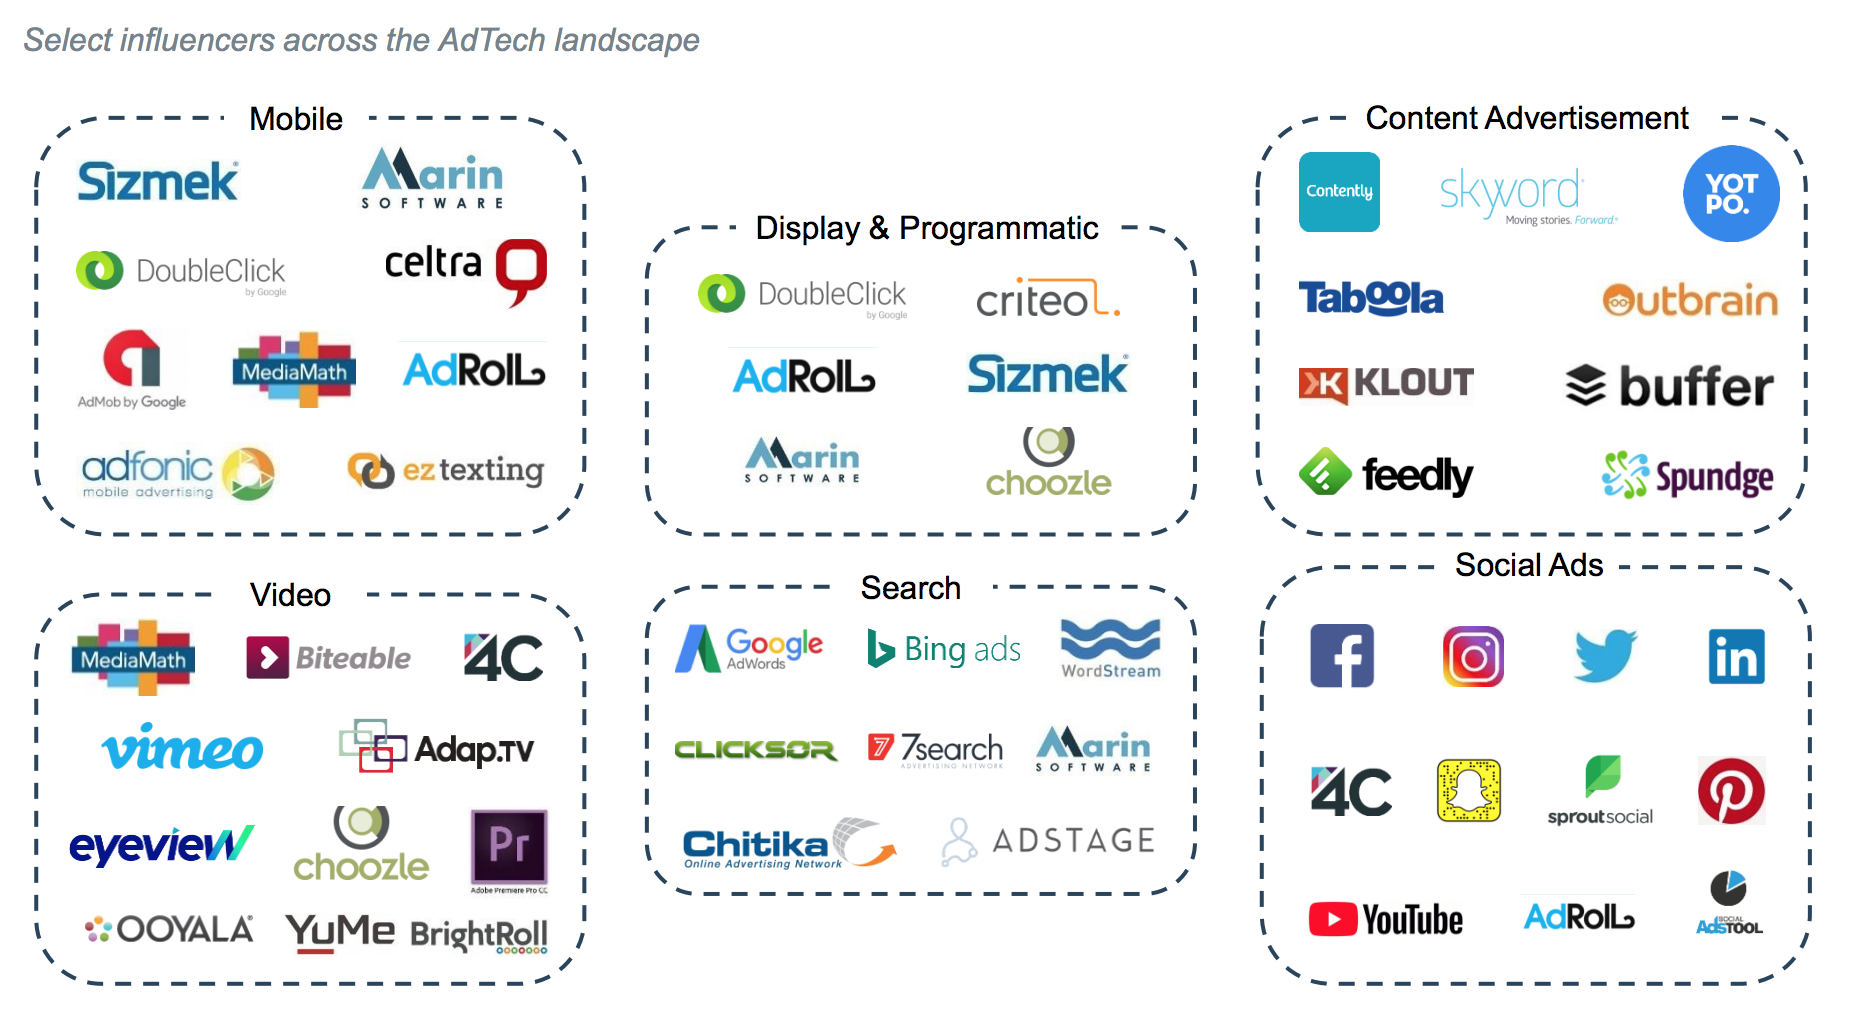 Taken from Arbor Advisor's deck on the AdTech Industry, which can be found  here .